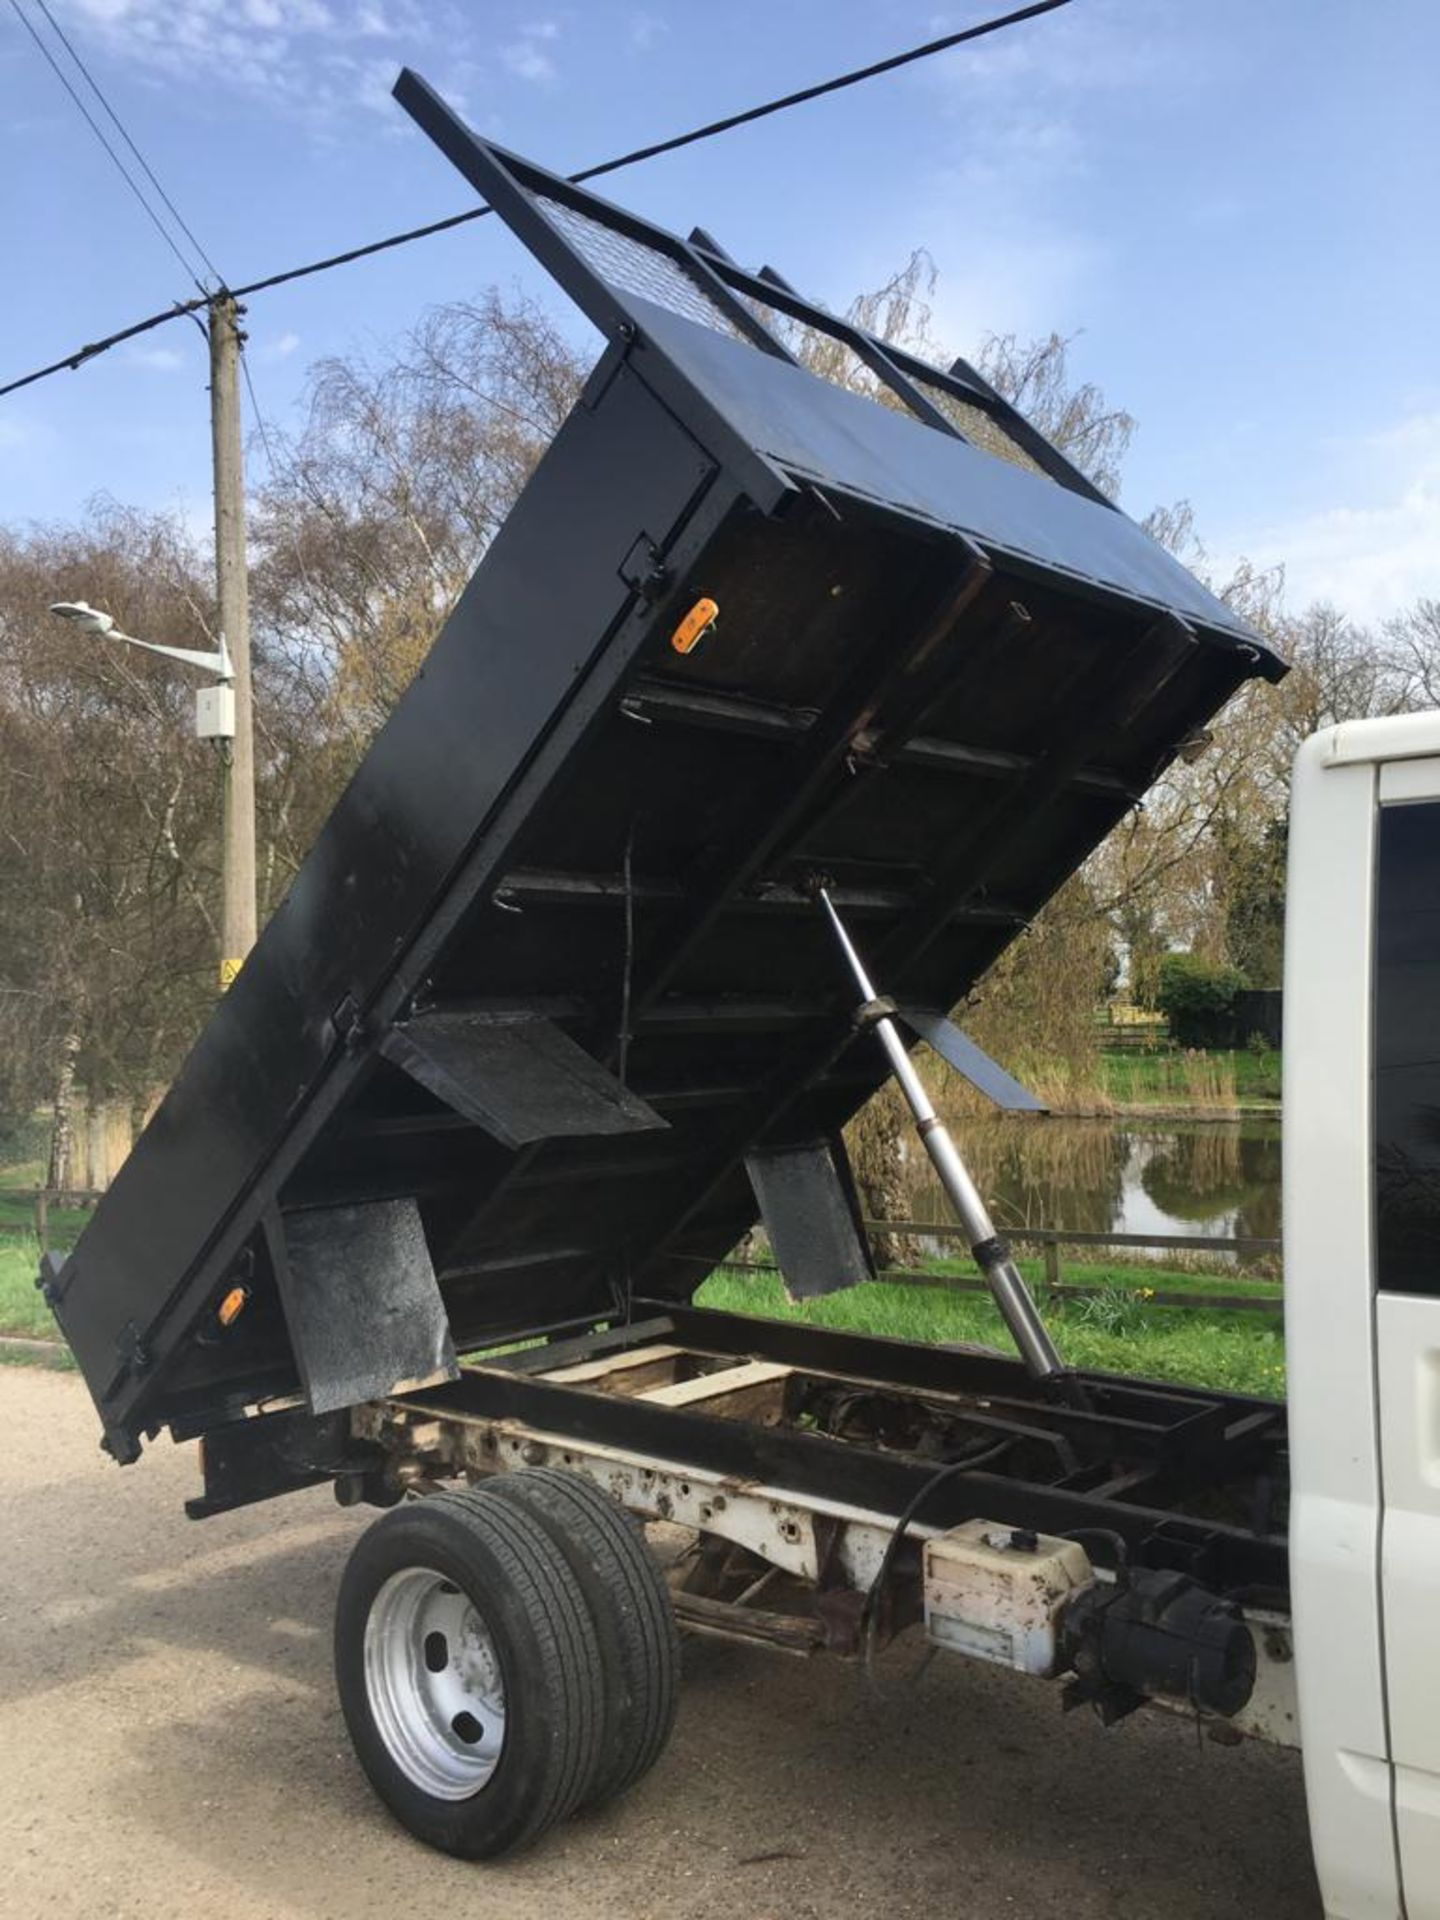 2006 FORD TRANSIT DOUBLE CAB TIPPER - Image 6 of 22